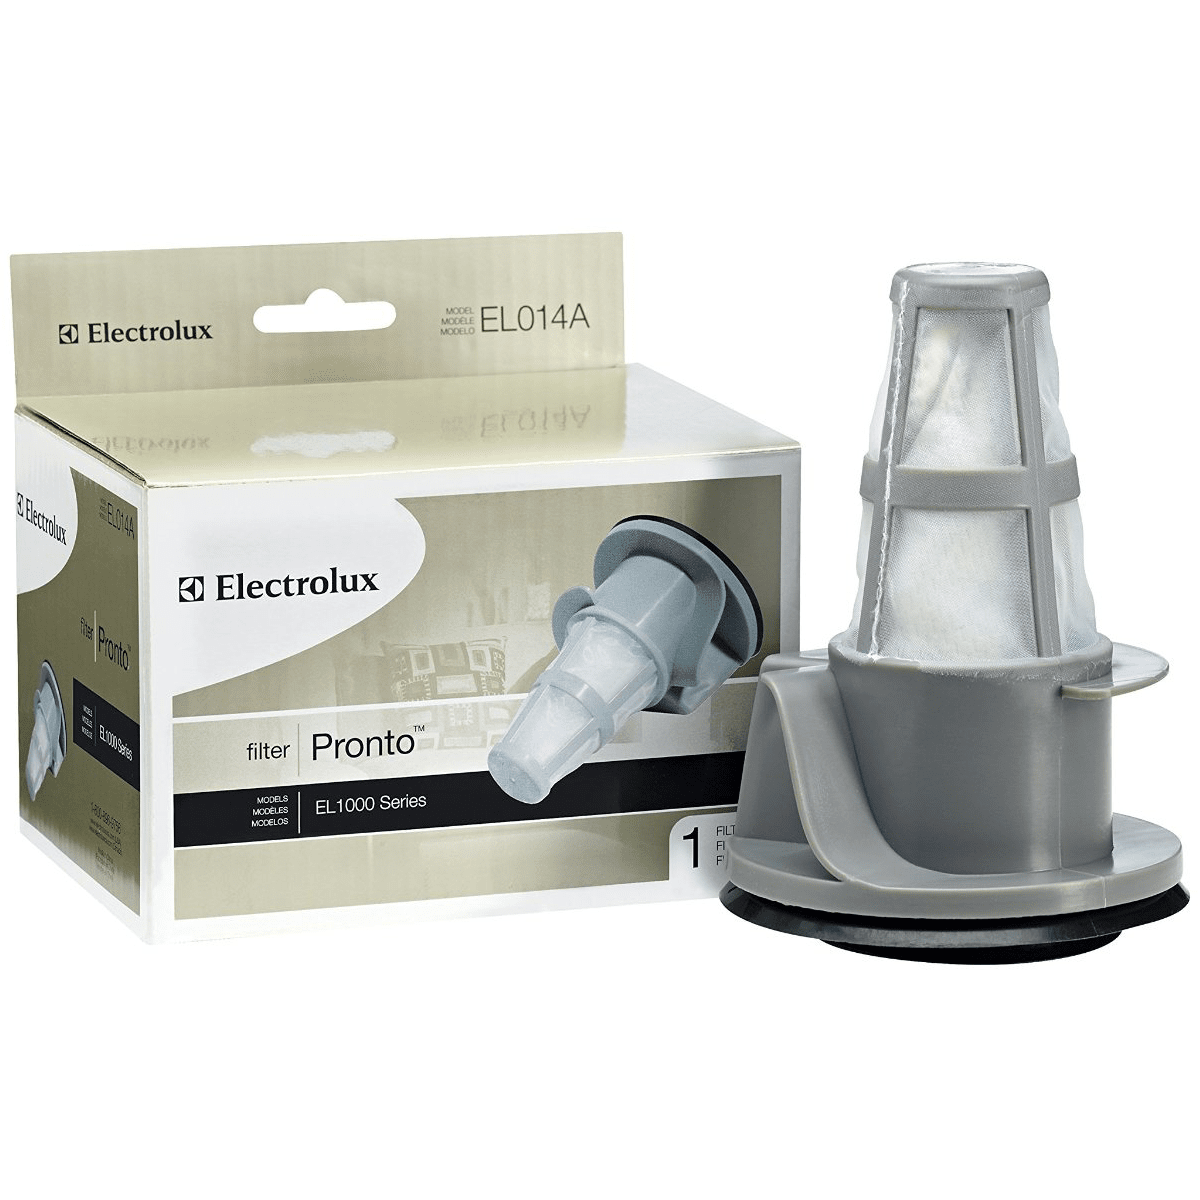 Electrolux Pronto Replacement Filter El014a Sylvane